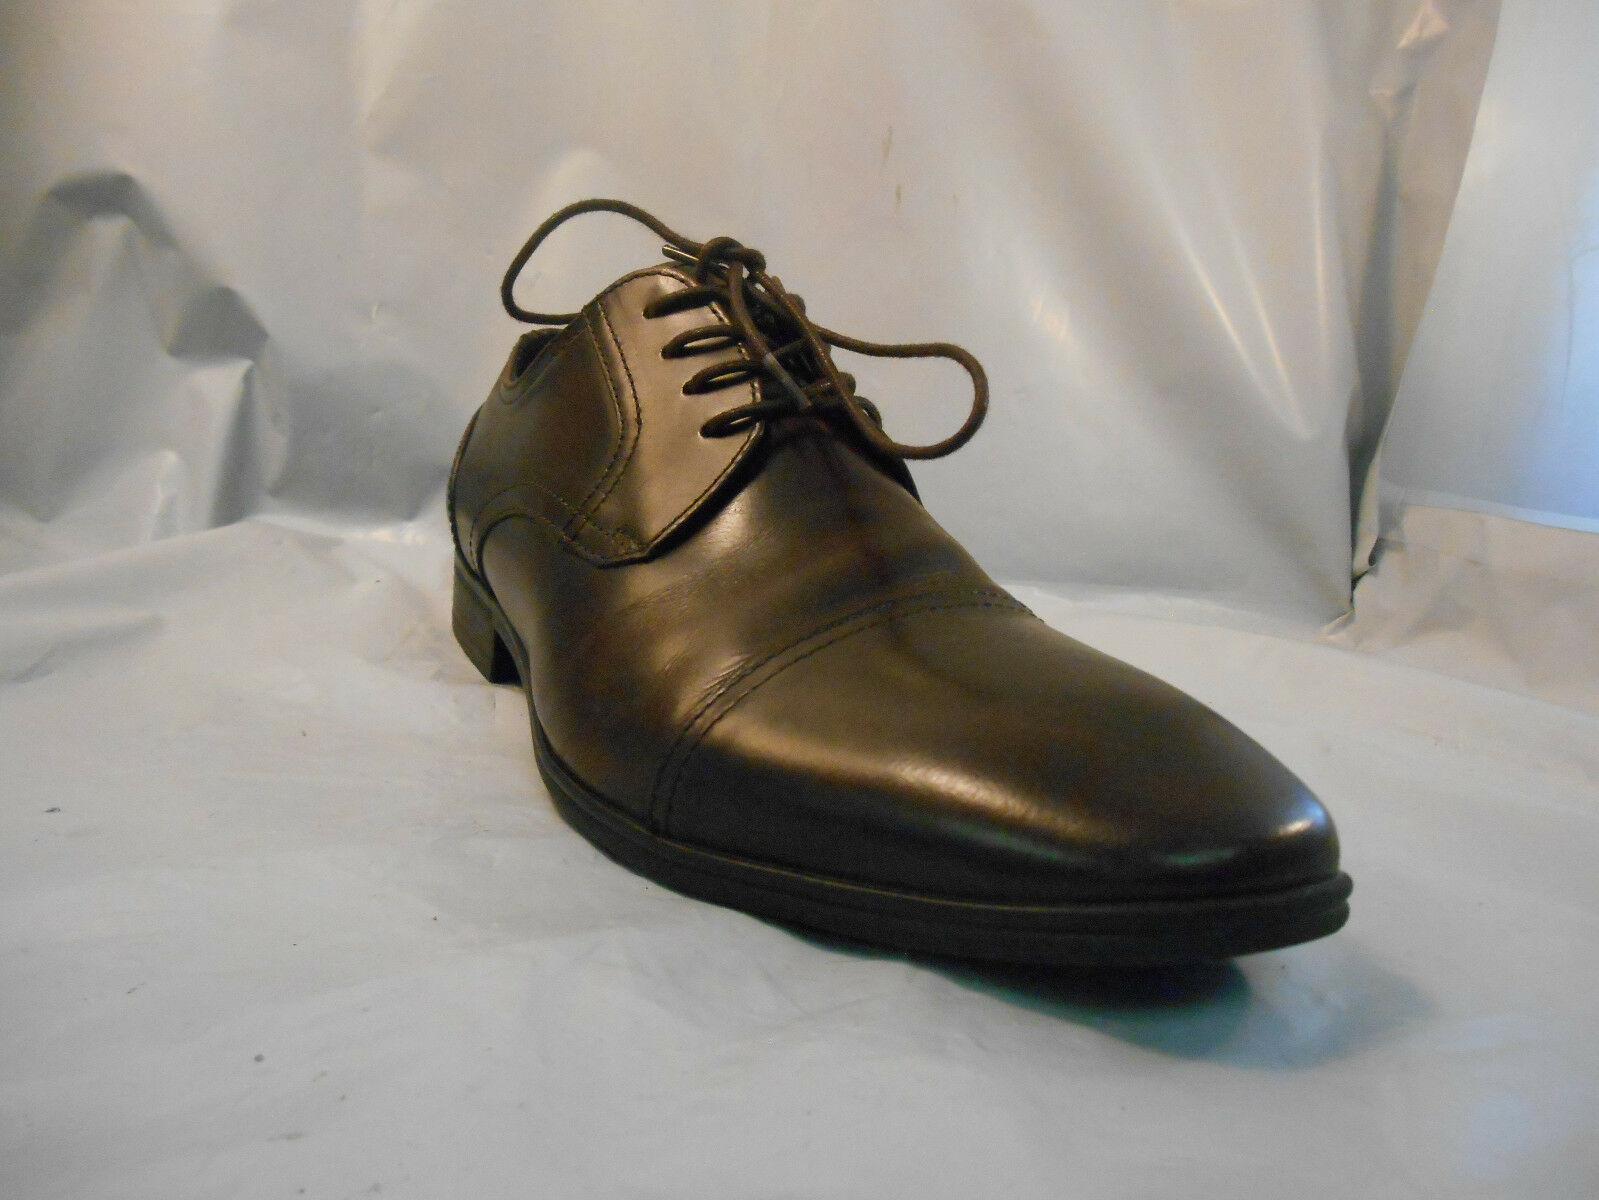 Kenneth Cole Reaction In A Min-ute Brown Leather Oxfords Dress shoes Men's 8 M